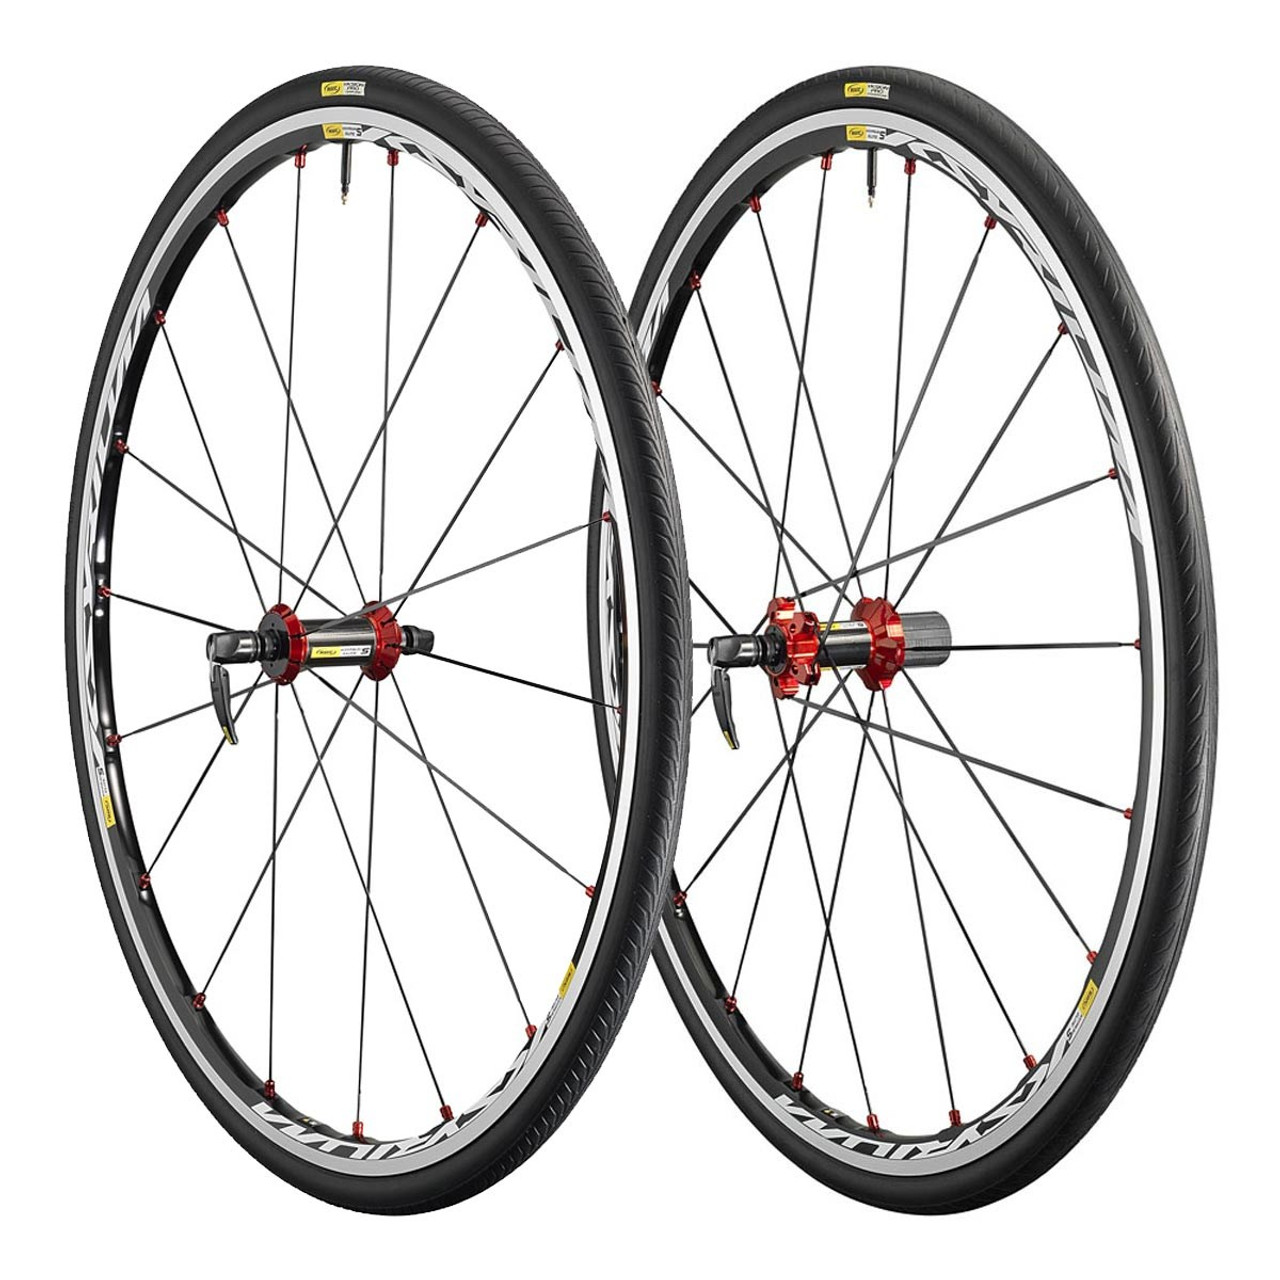 Texas Cyclesport Mavic Ksyrium Elite S Red Wheelset MV-KSY-ELTS-RD 799.99  New 5e31d7f95